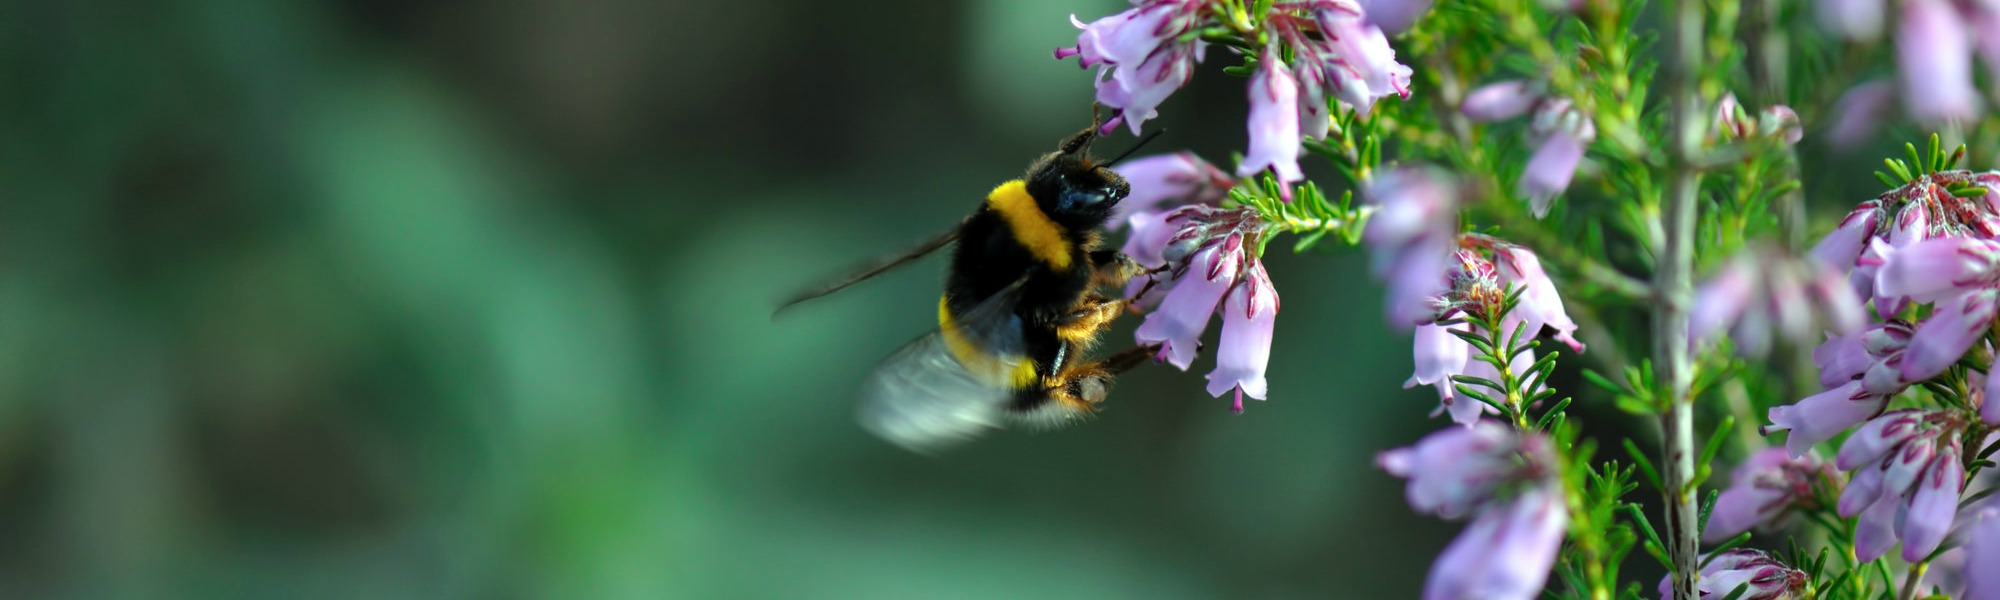 A buff-tailed bumblebee,  Bombus terrestris , visiting heather. Photo by  Steve Slater .